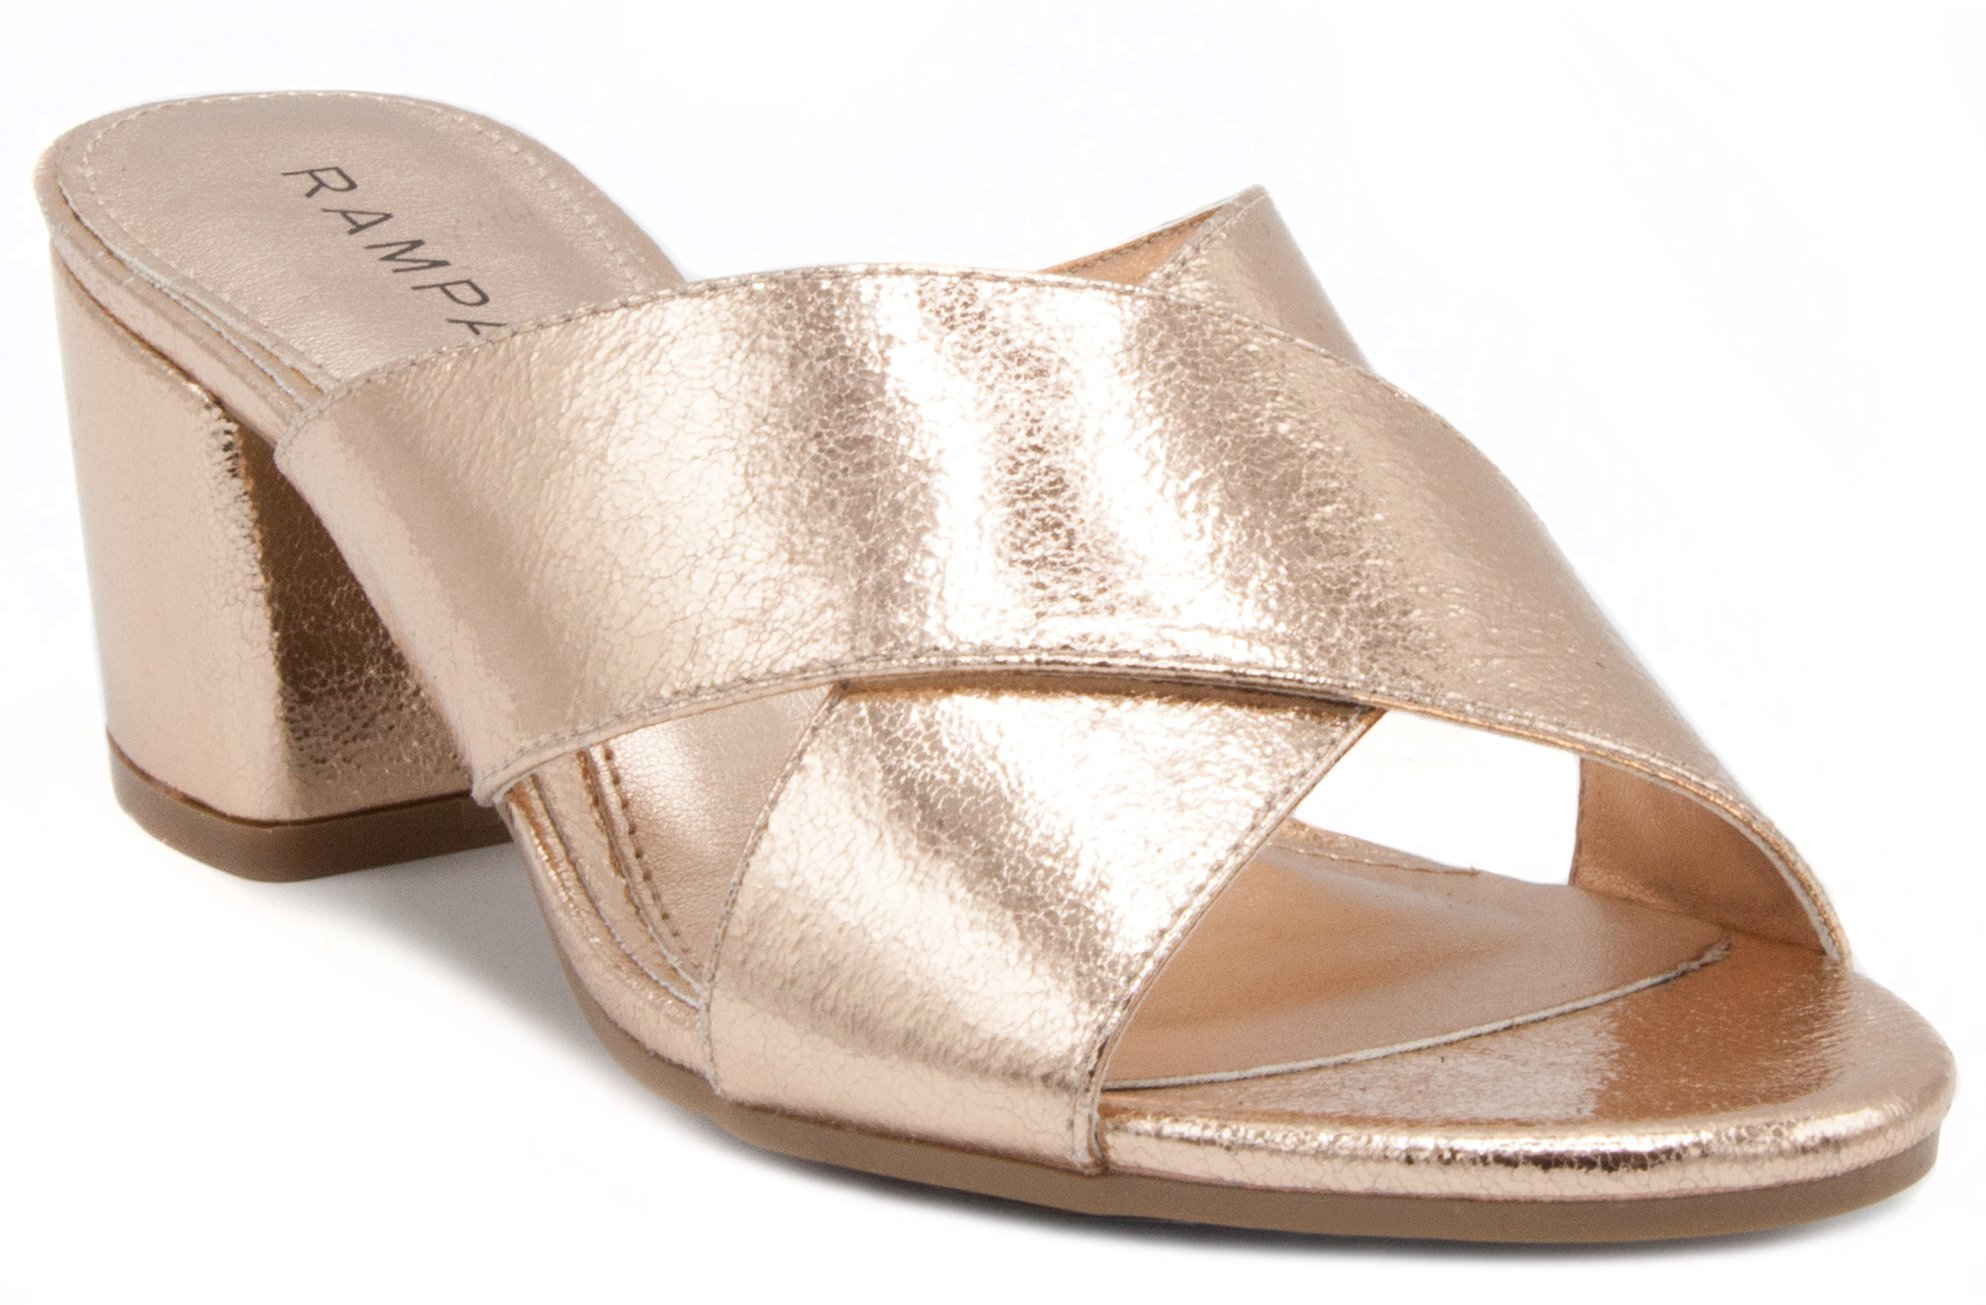 Rampage Women's Hannie Heeled Cross Banded Slide Sandal 8 Rose Gold Foil